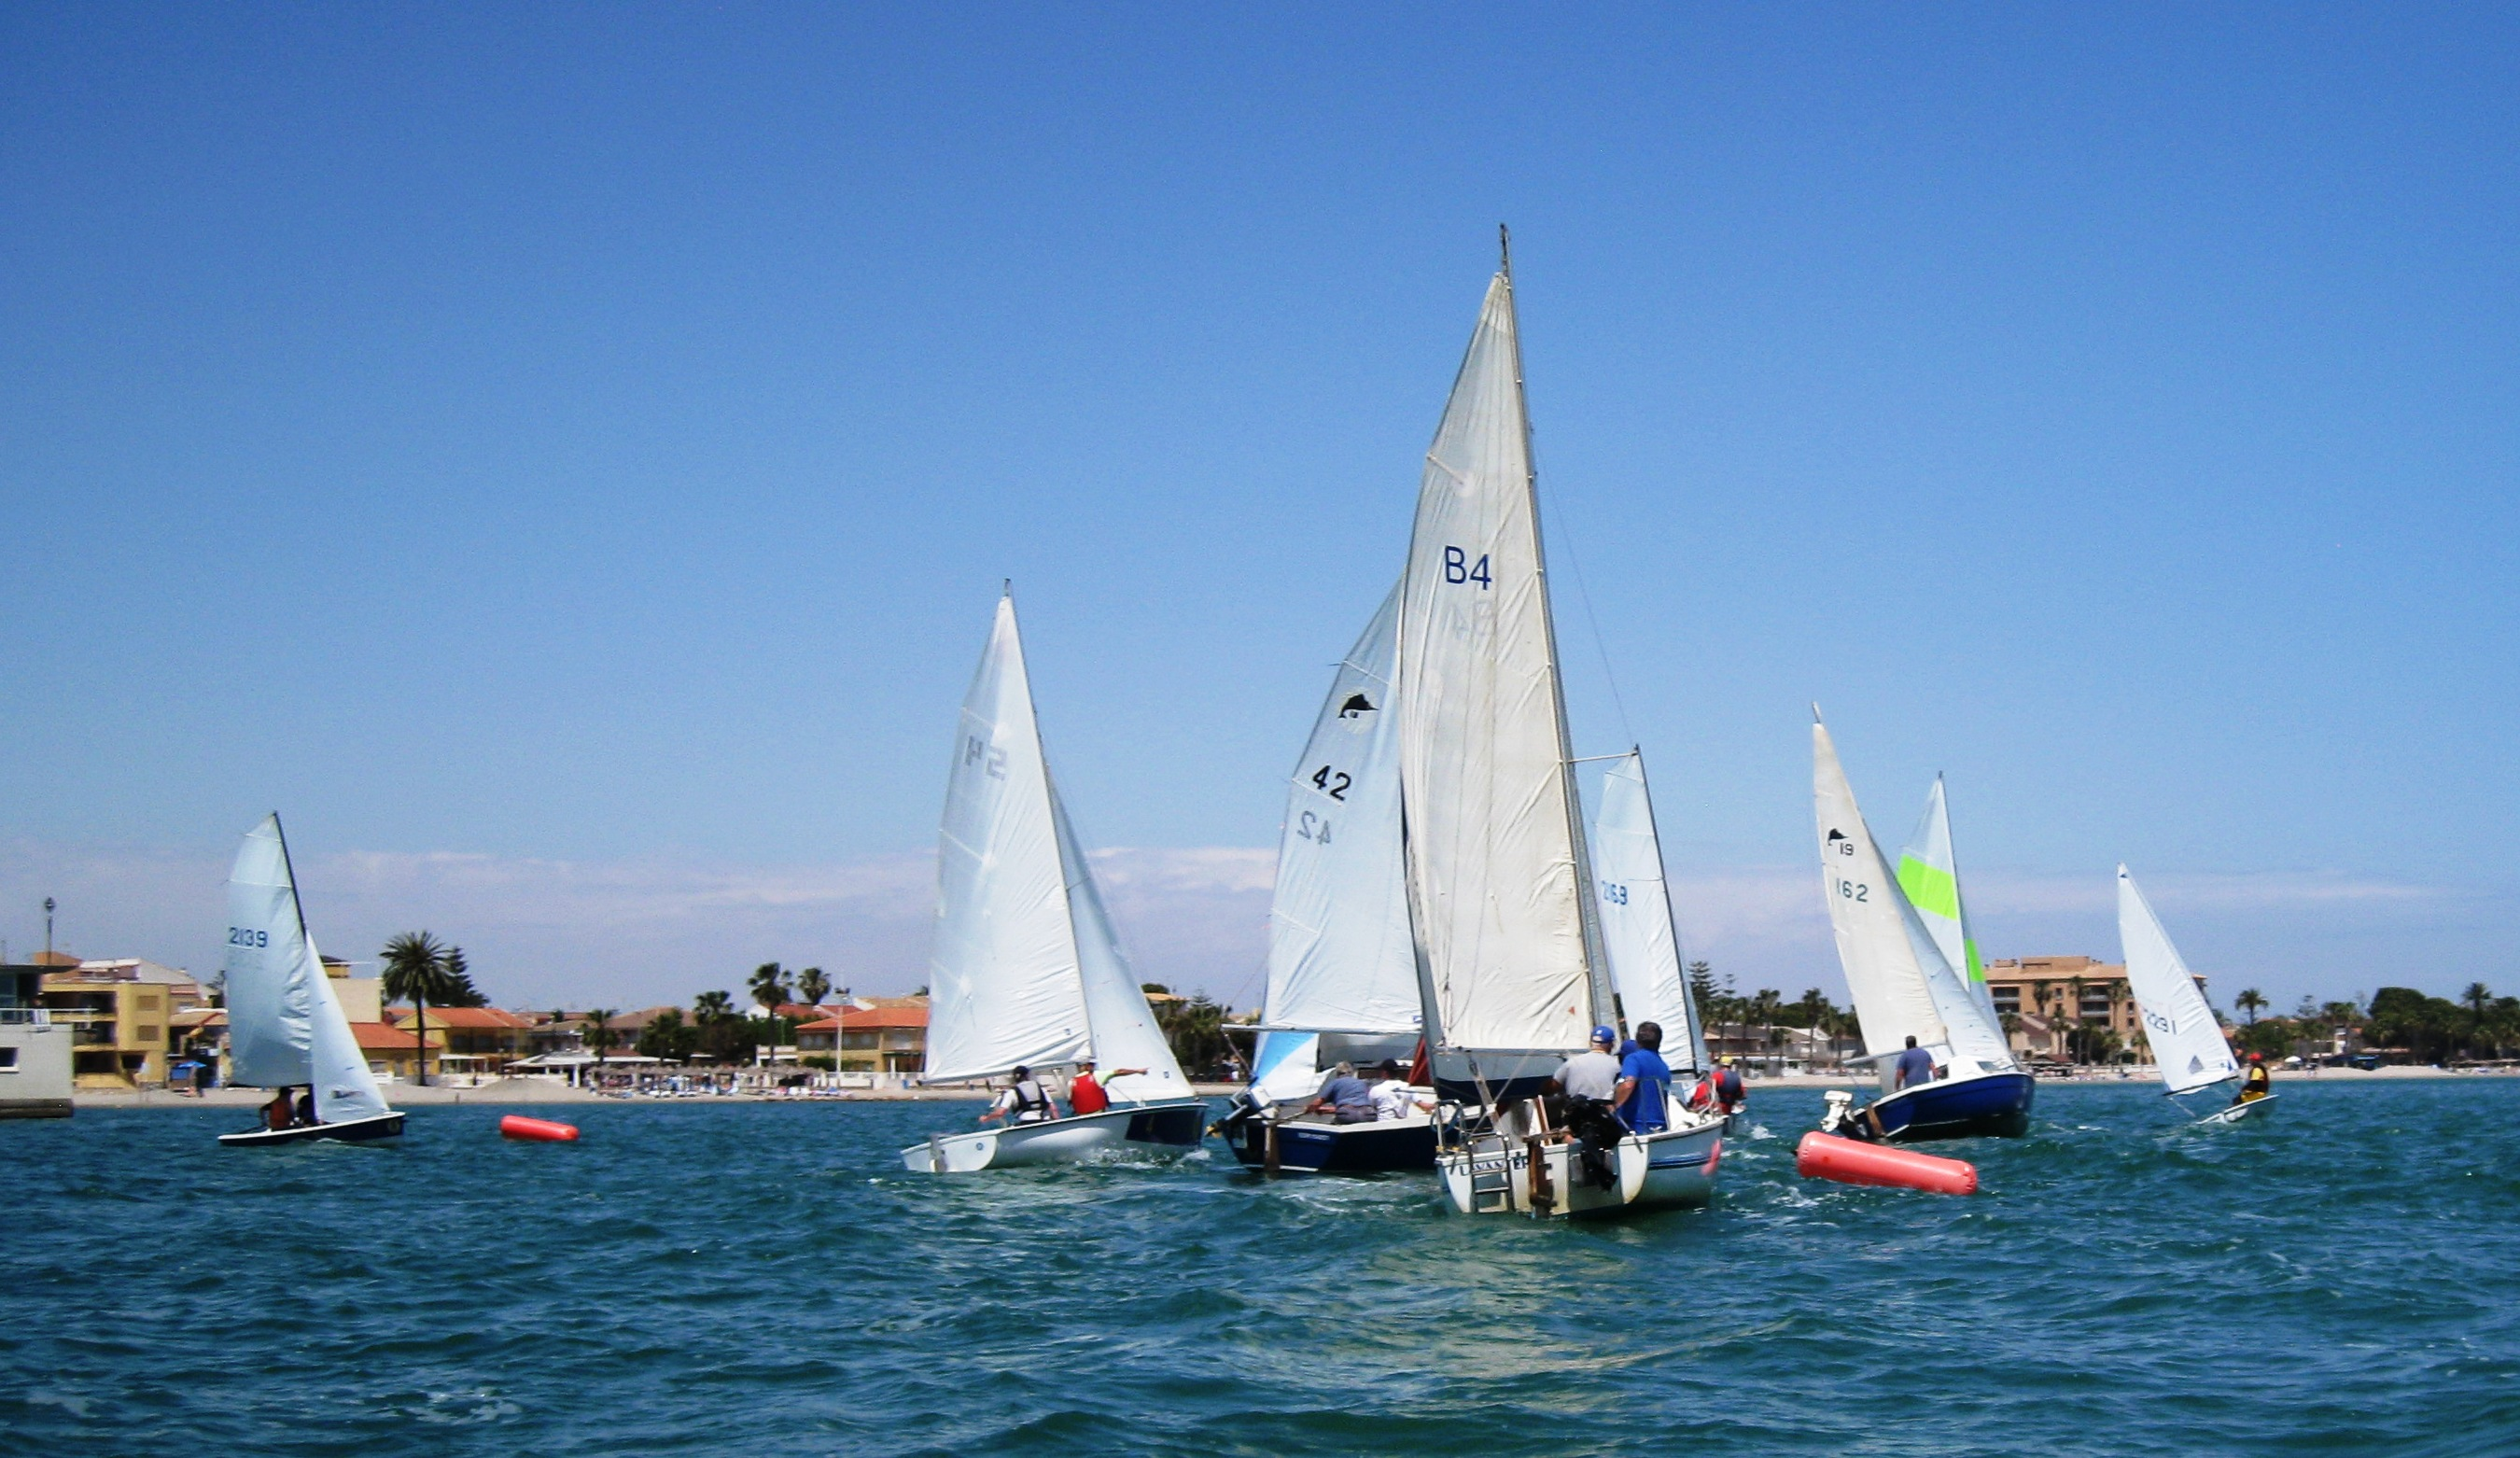 Start of the 2nd race